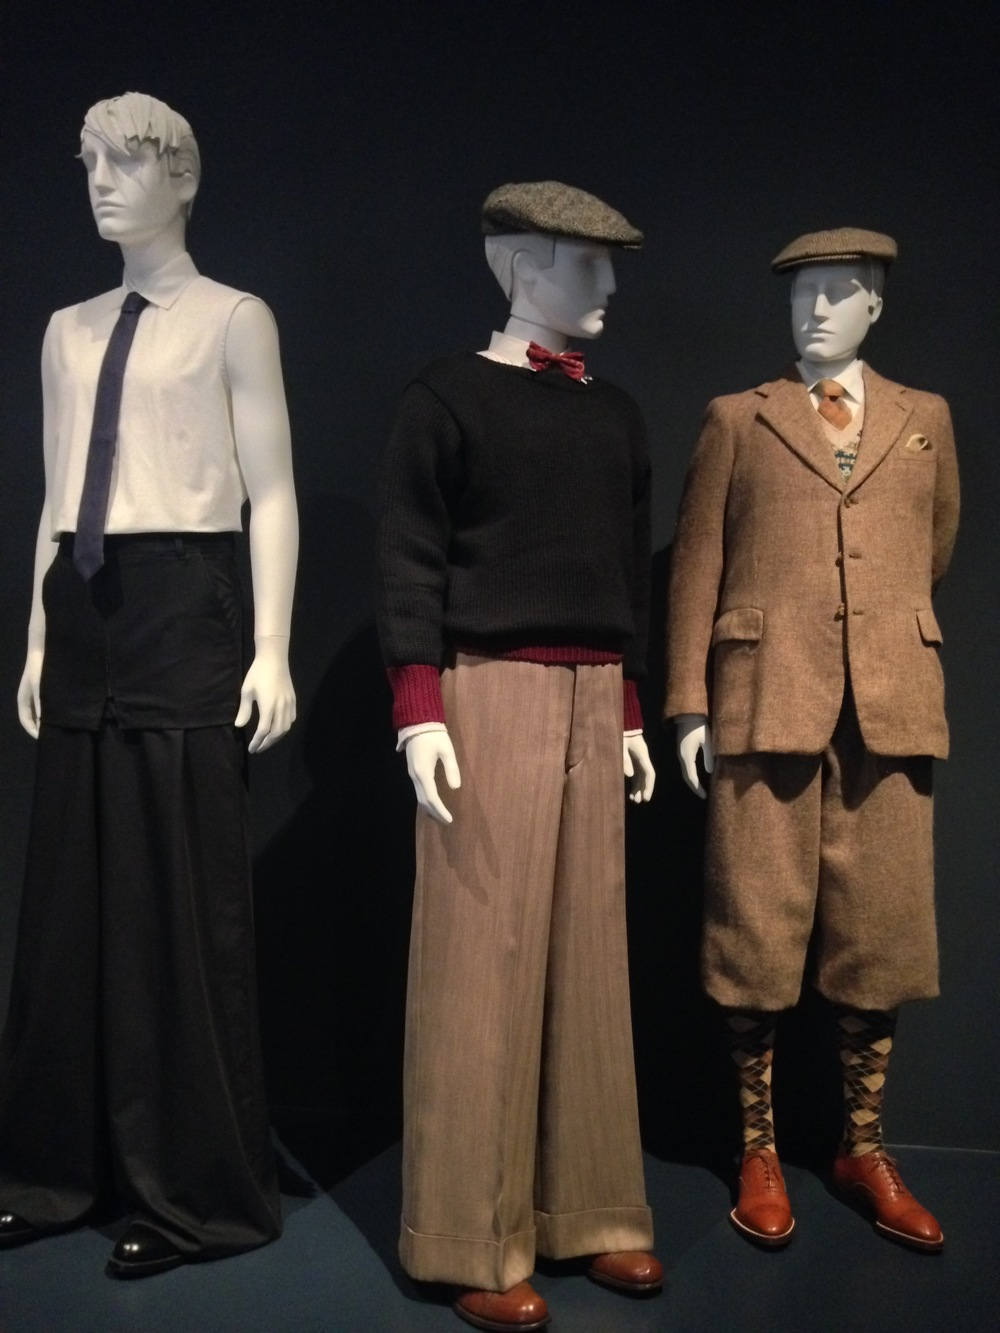 Left to right  Raf Simons, Ensemble, Spring/Summer 2011  Oxford Bags Ensemble, 1928  Suit with Plus-Four knickers. Ropers 'Ltd. 1950